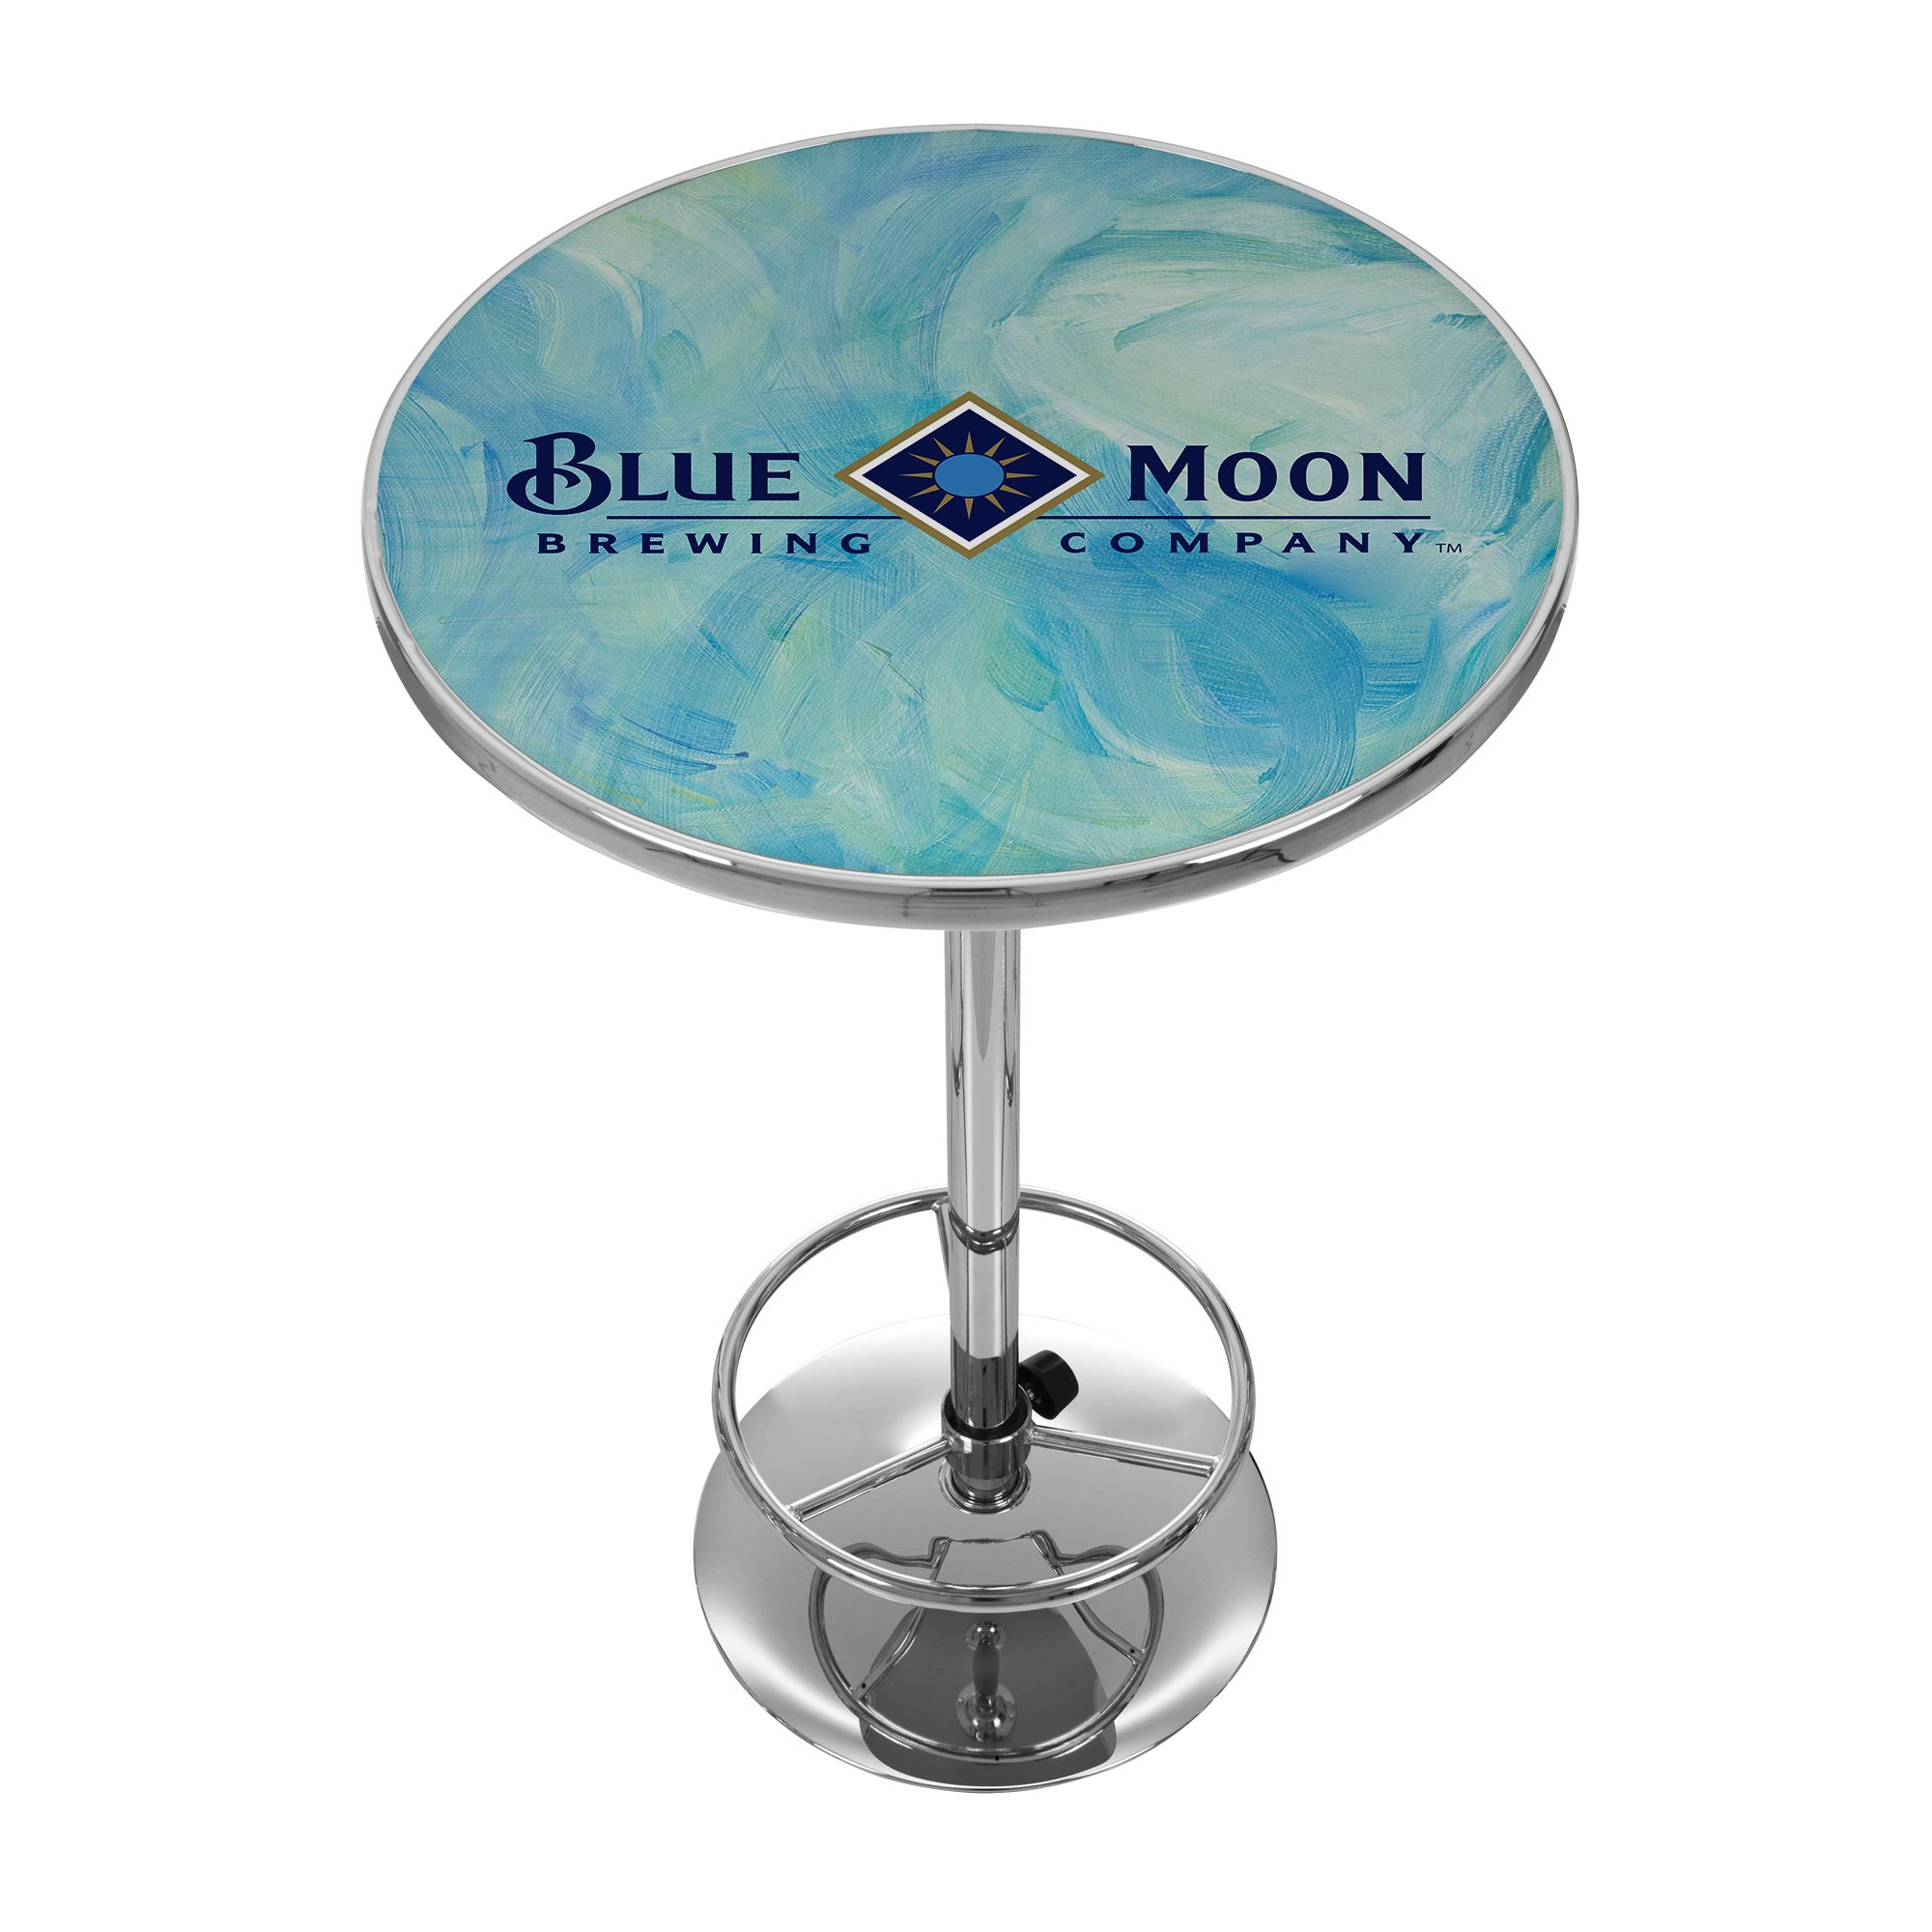 Blue Moon Chrome Pub Table